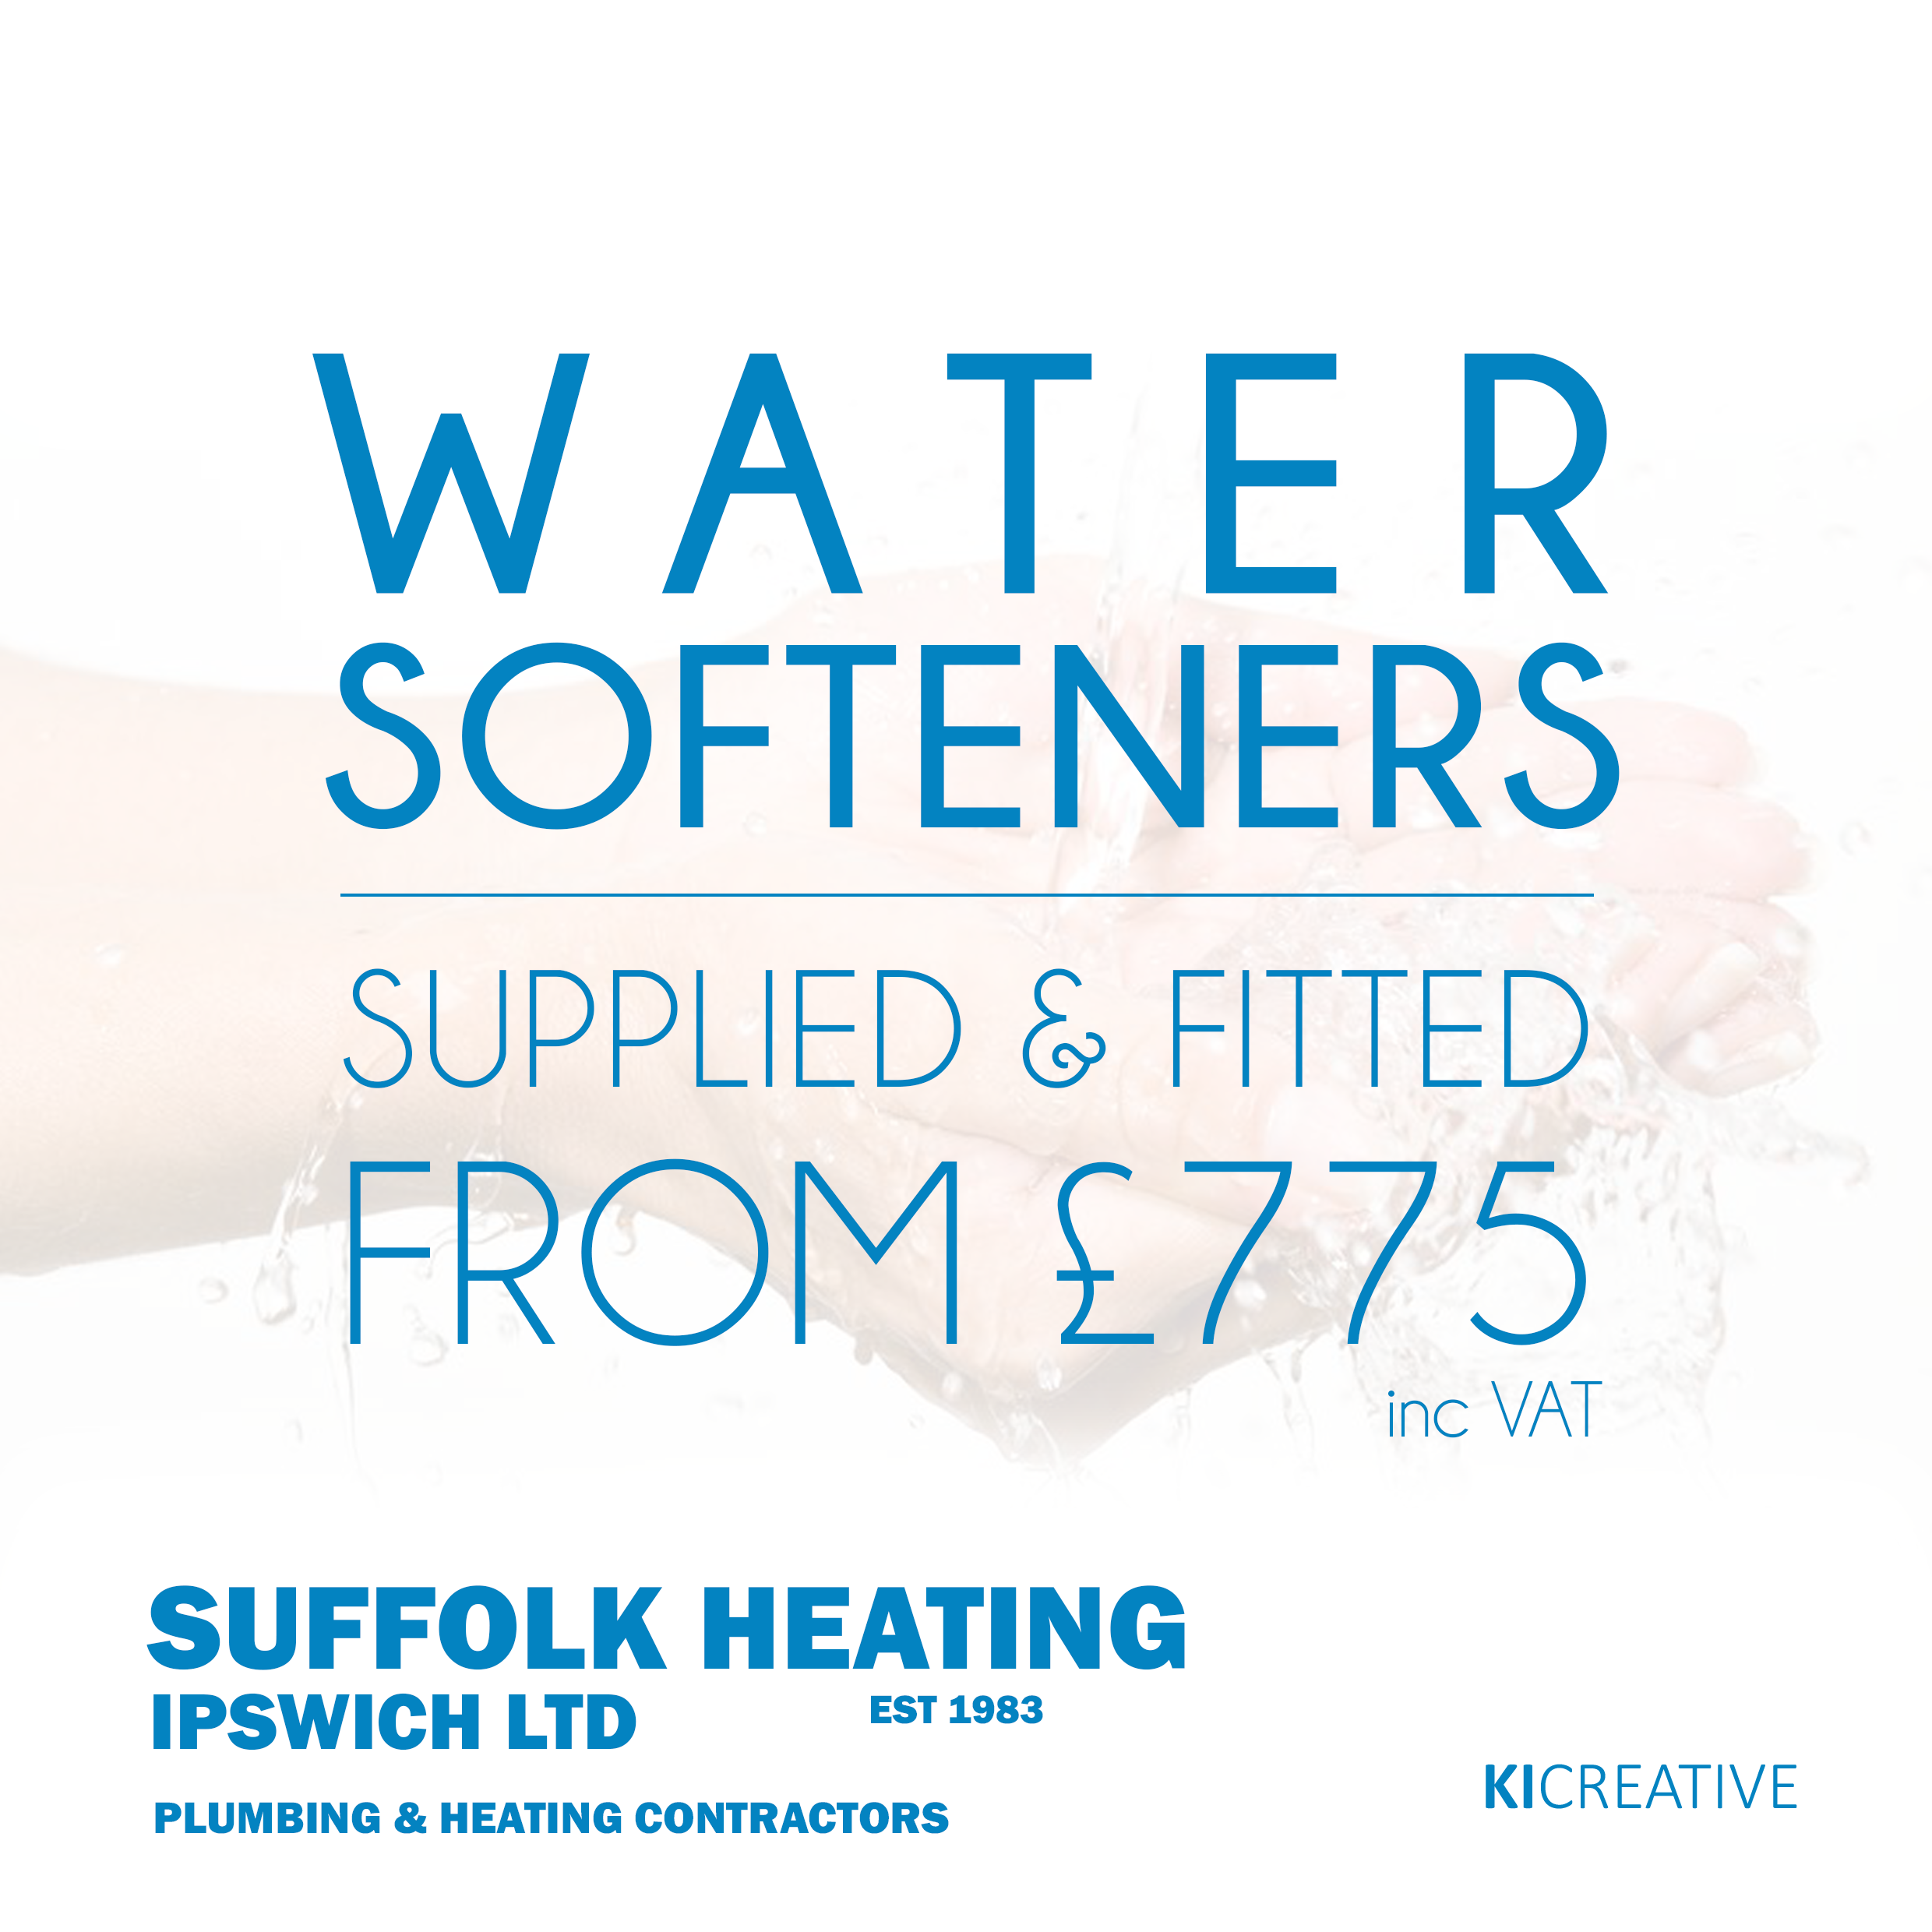 Water Softeners Offer Plumbers Ipswich